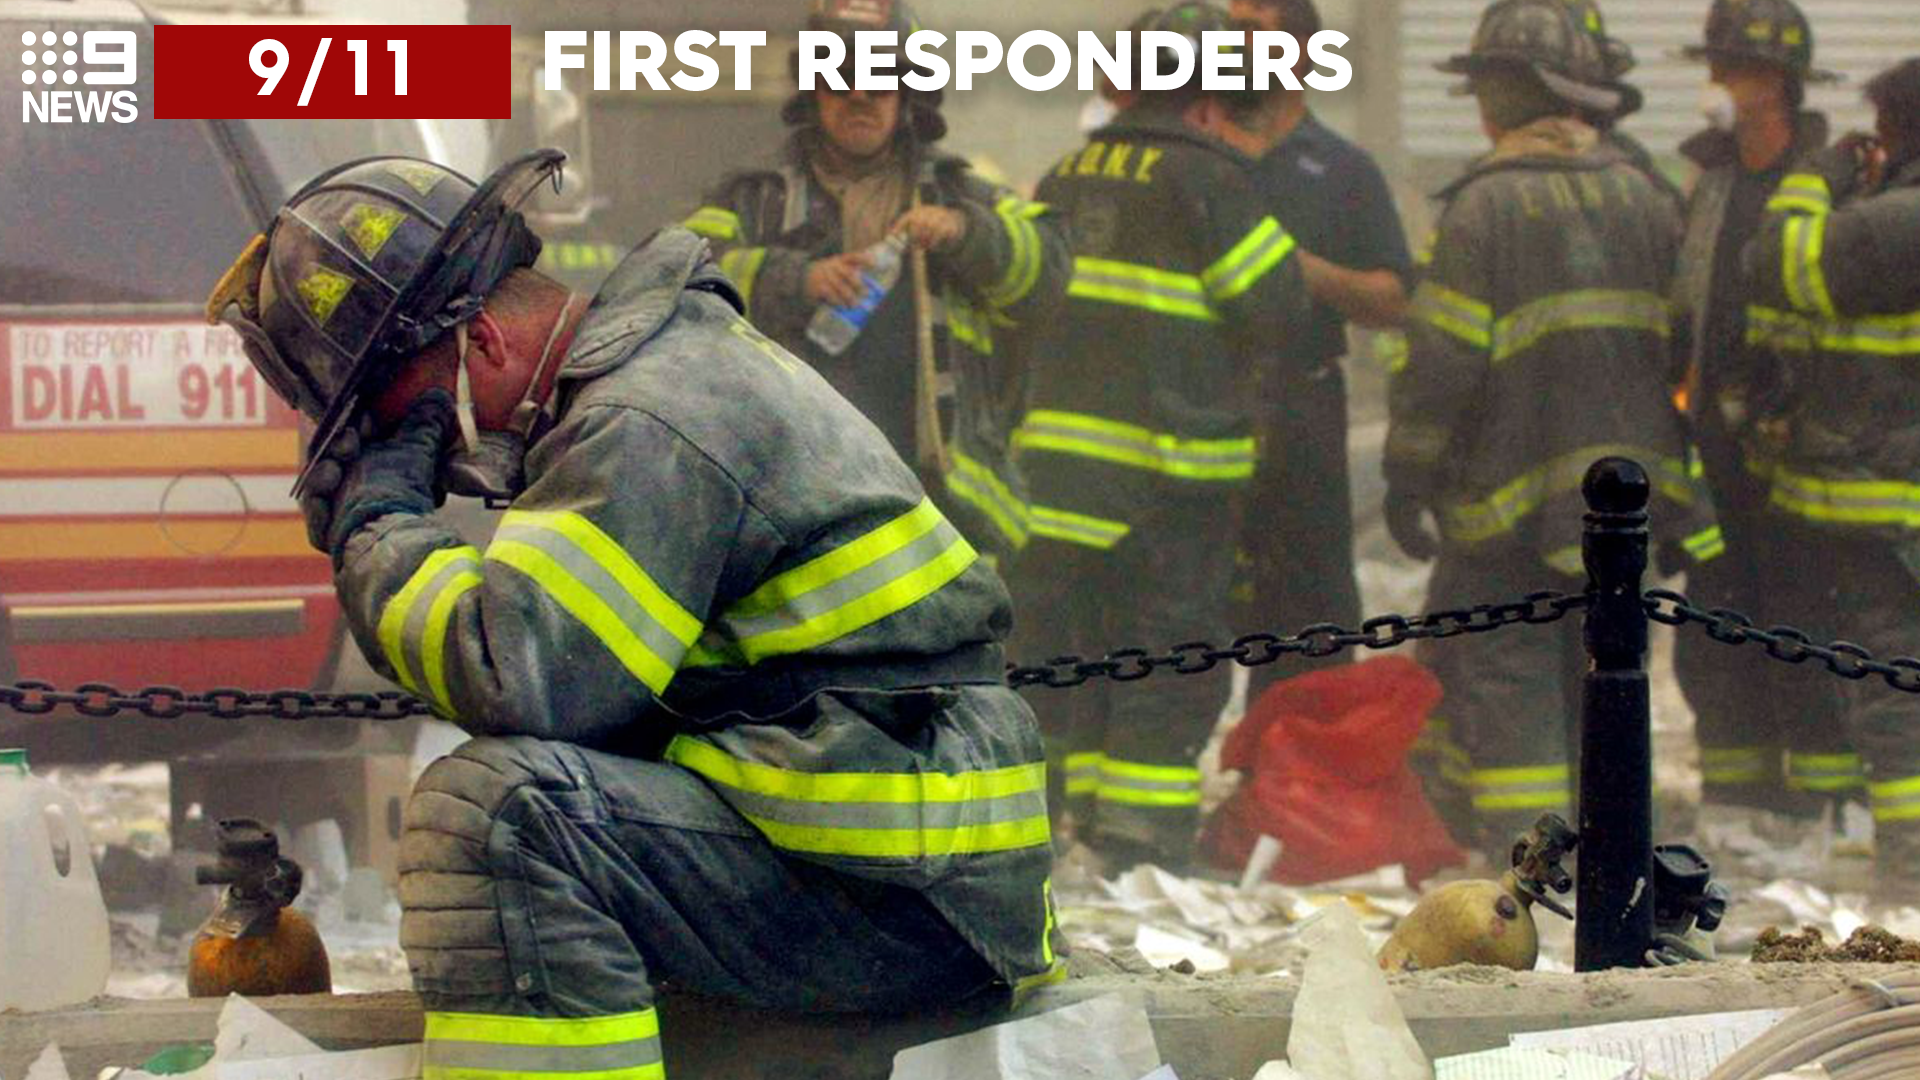 9/11: Passing the first responders in the stairwell